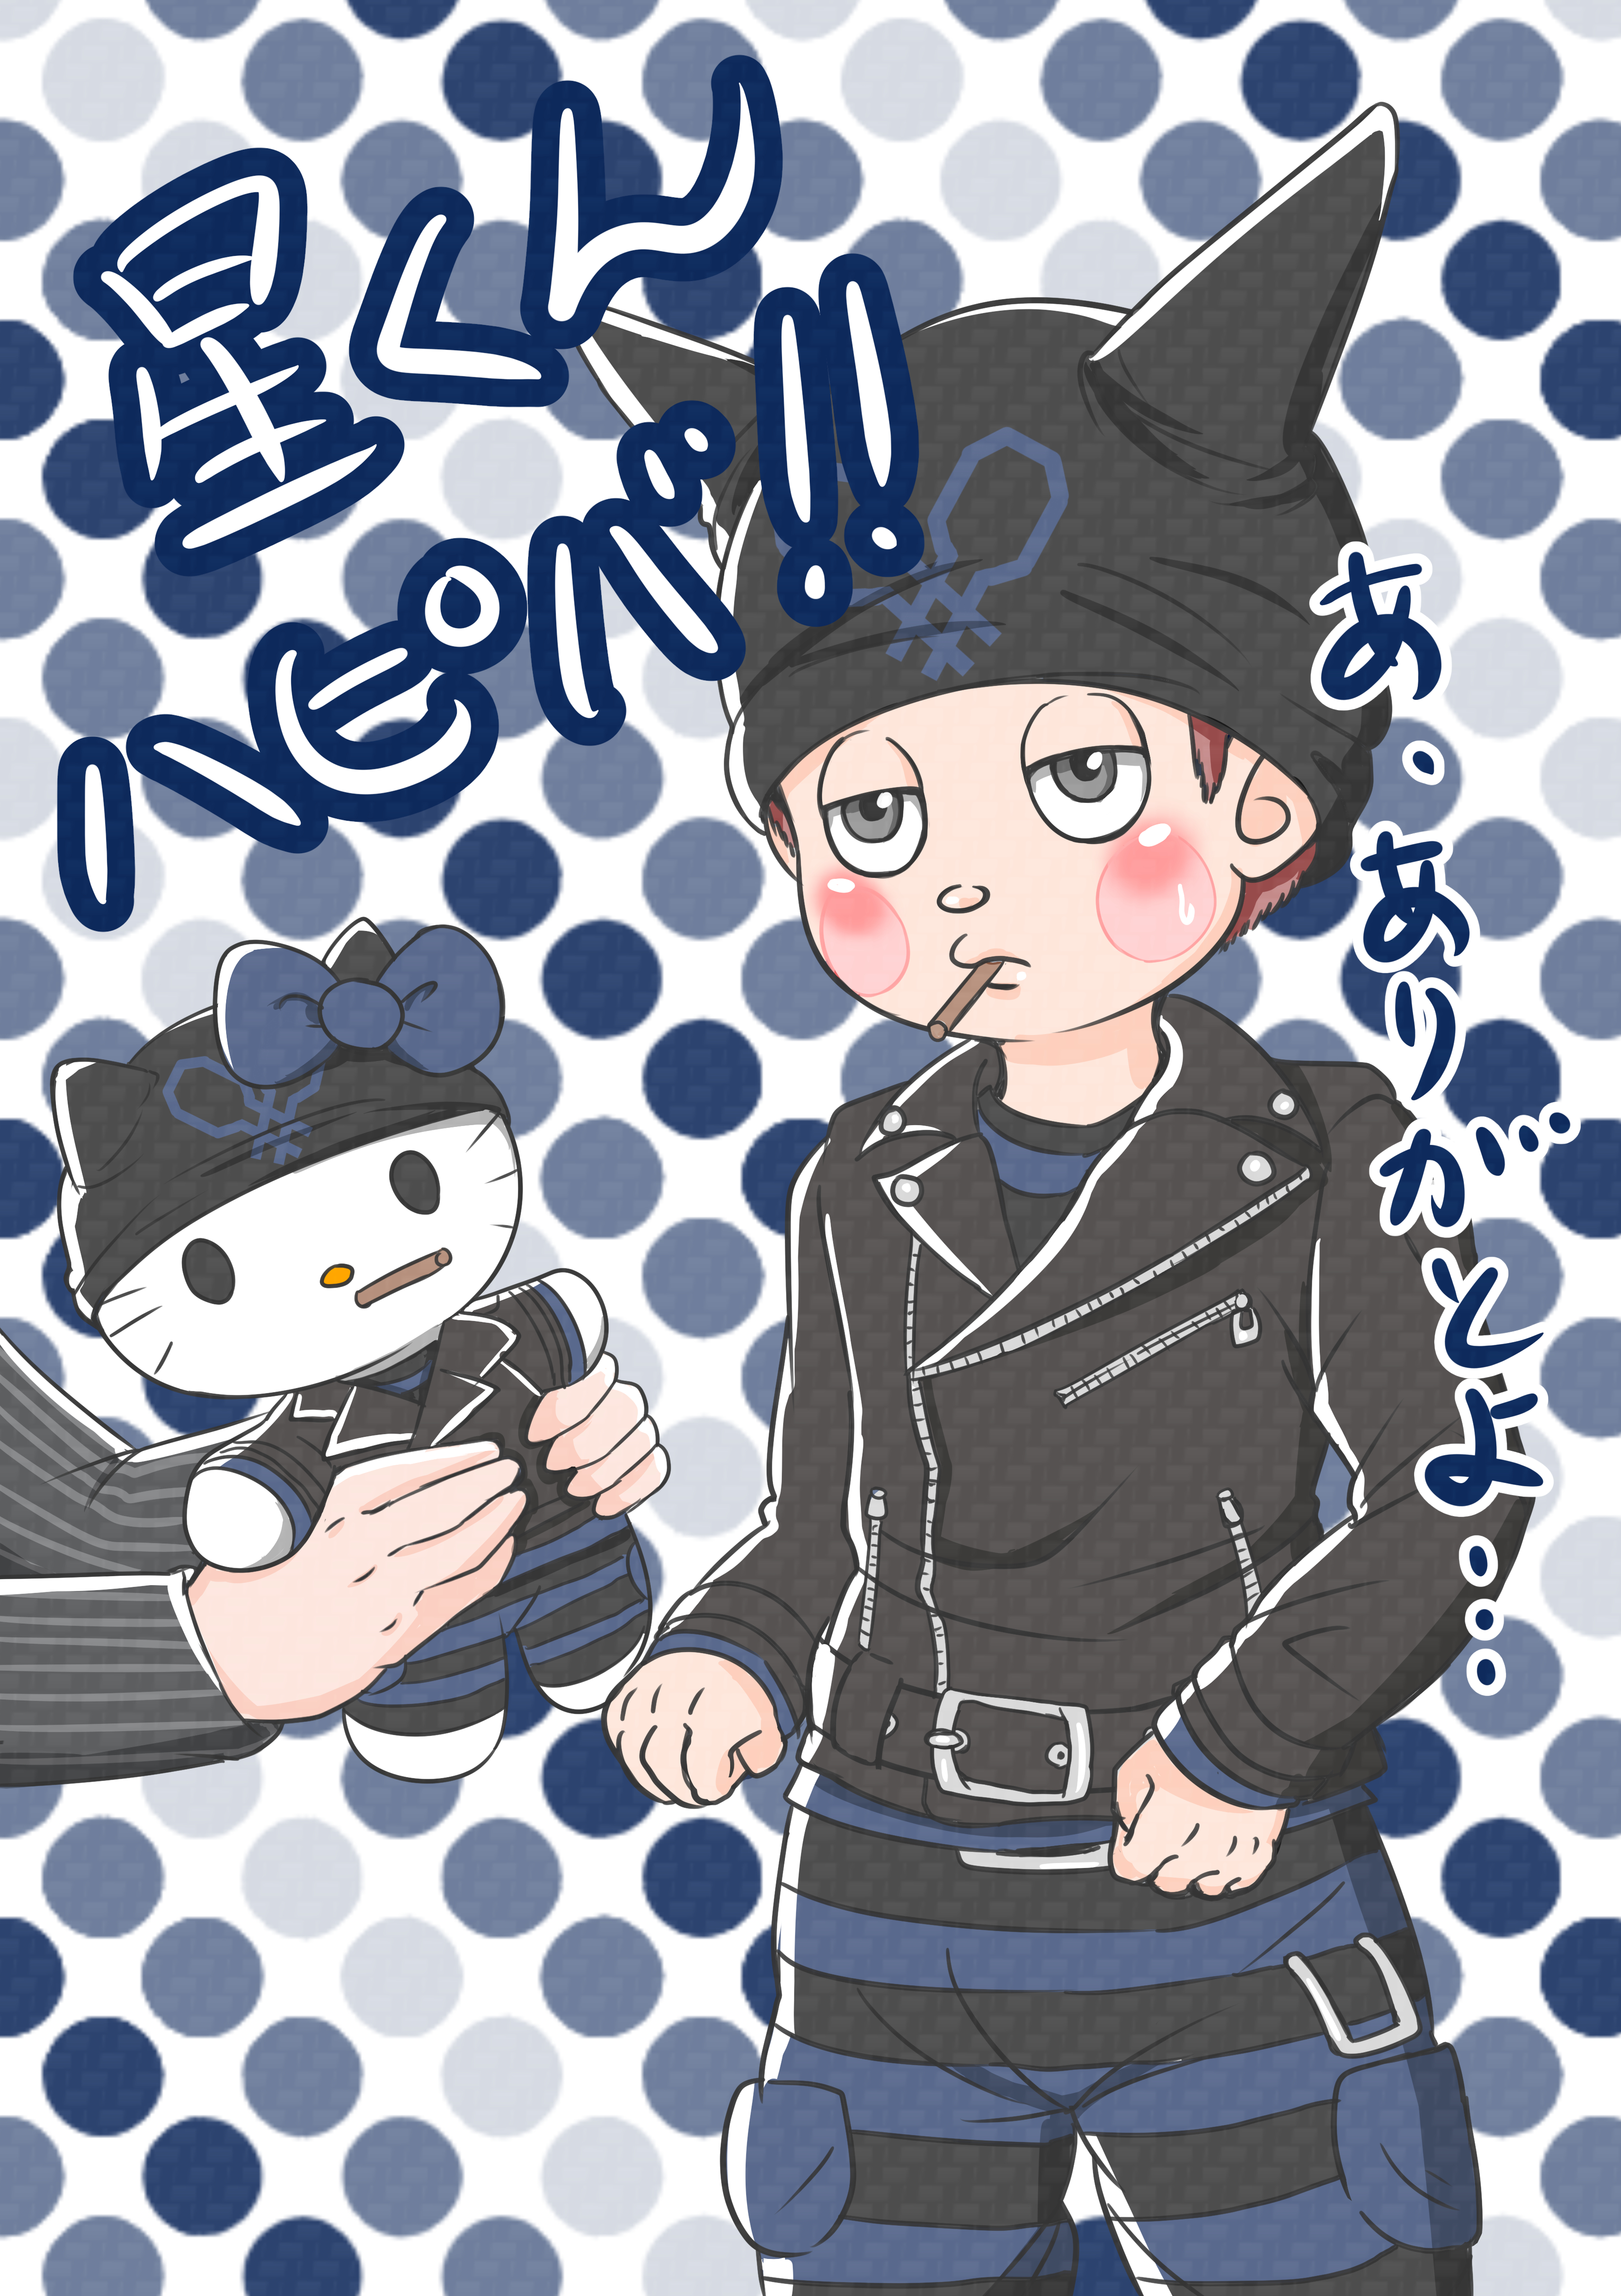 Hoshi Ryouma New Danganronpa V3 Zerochan Anime Image Board Having some fun on paper…i love hoshi's cat face buttons from his jacket so much, it's an adorable detail, related. zerochan